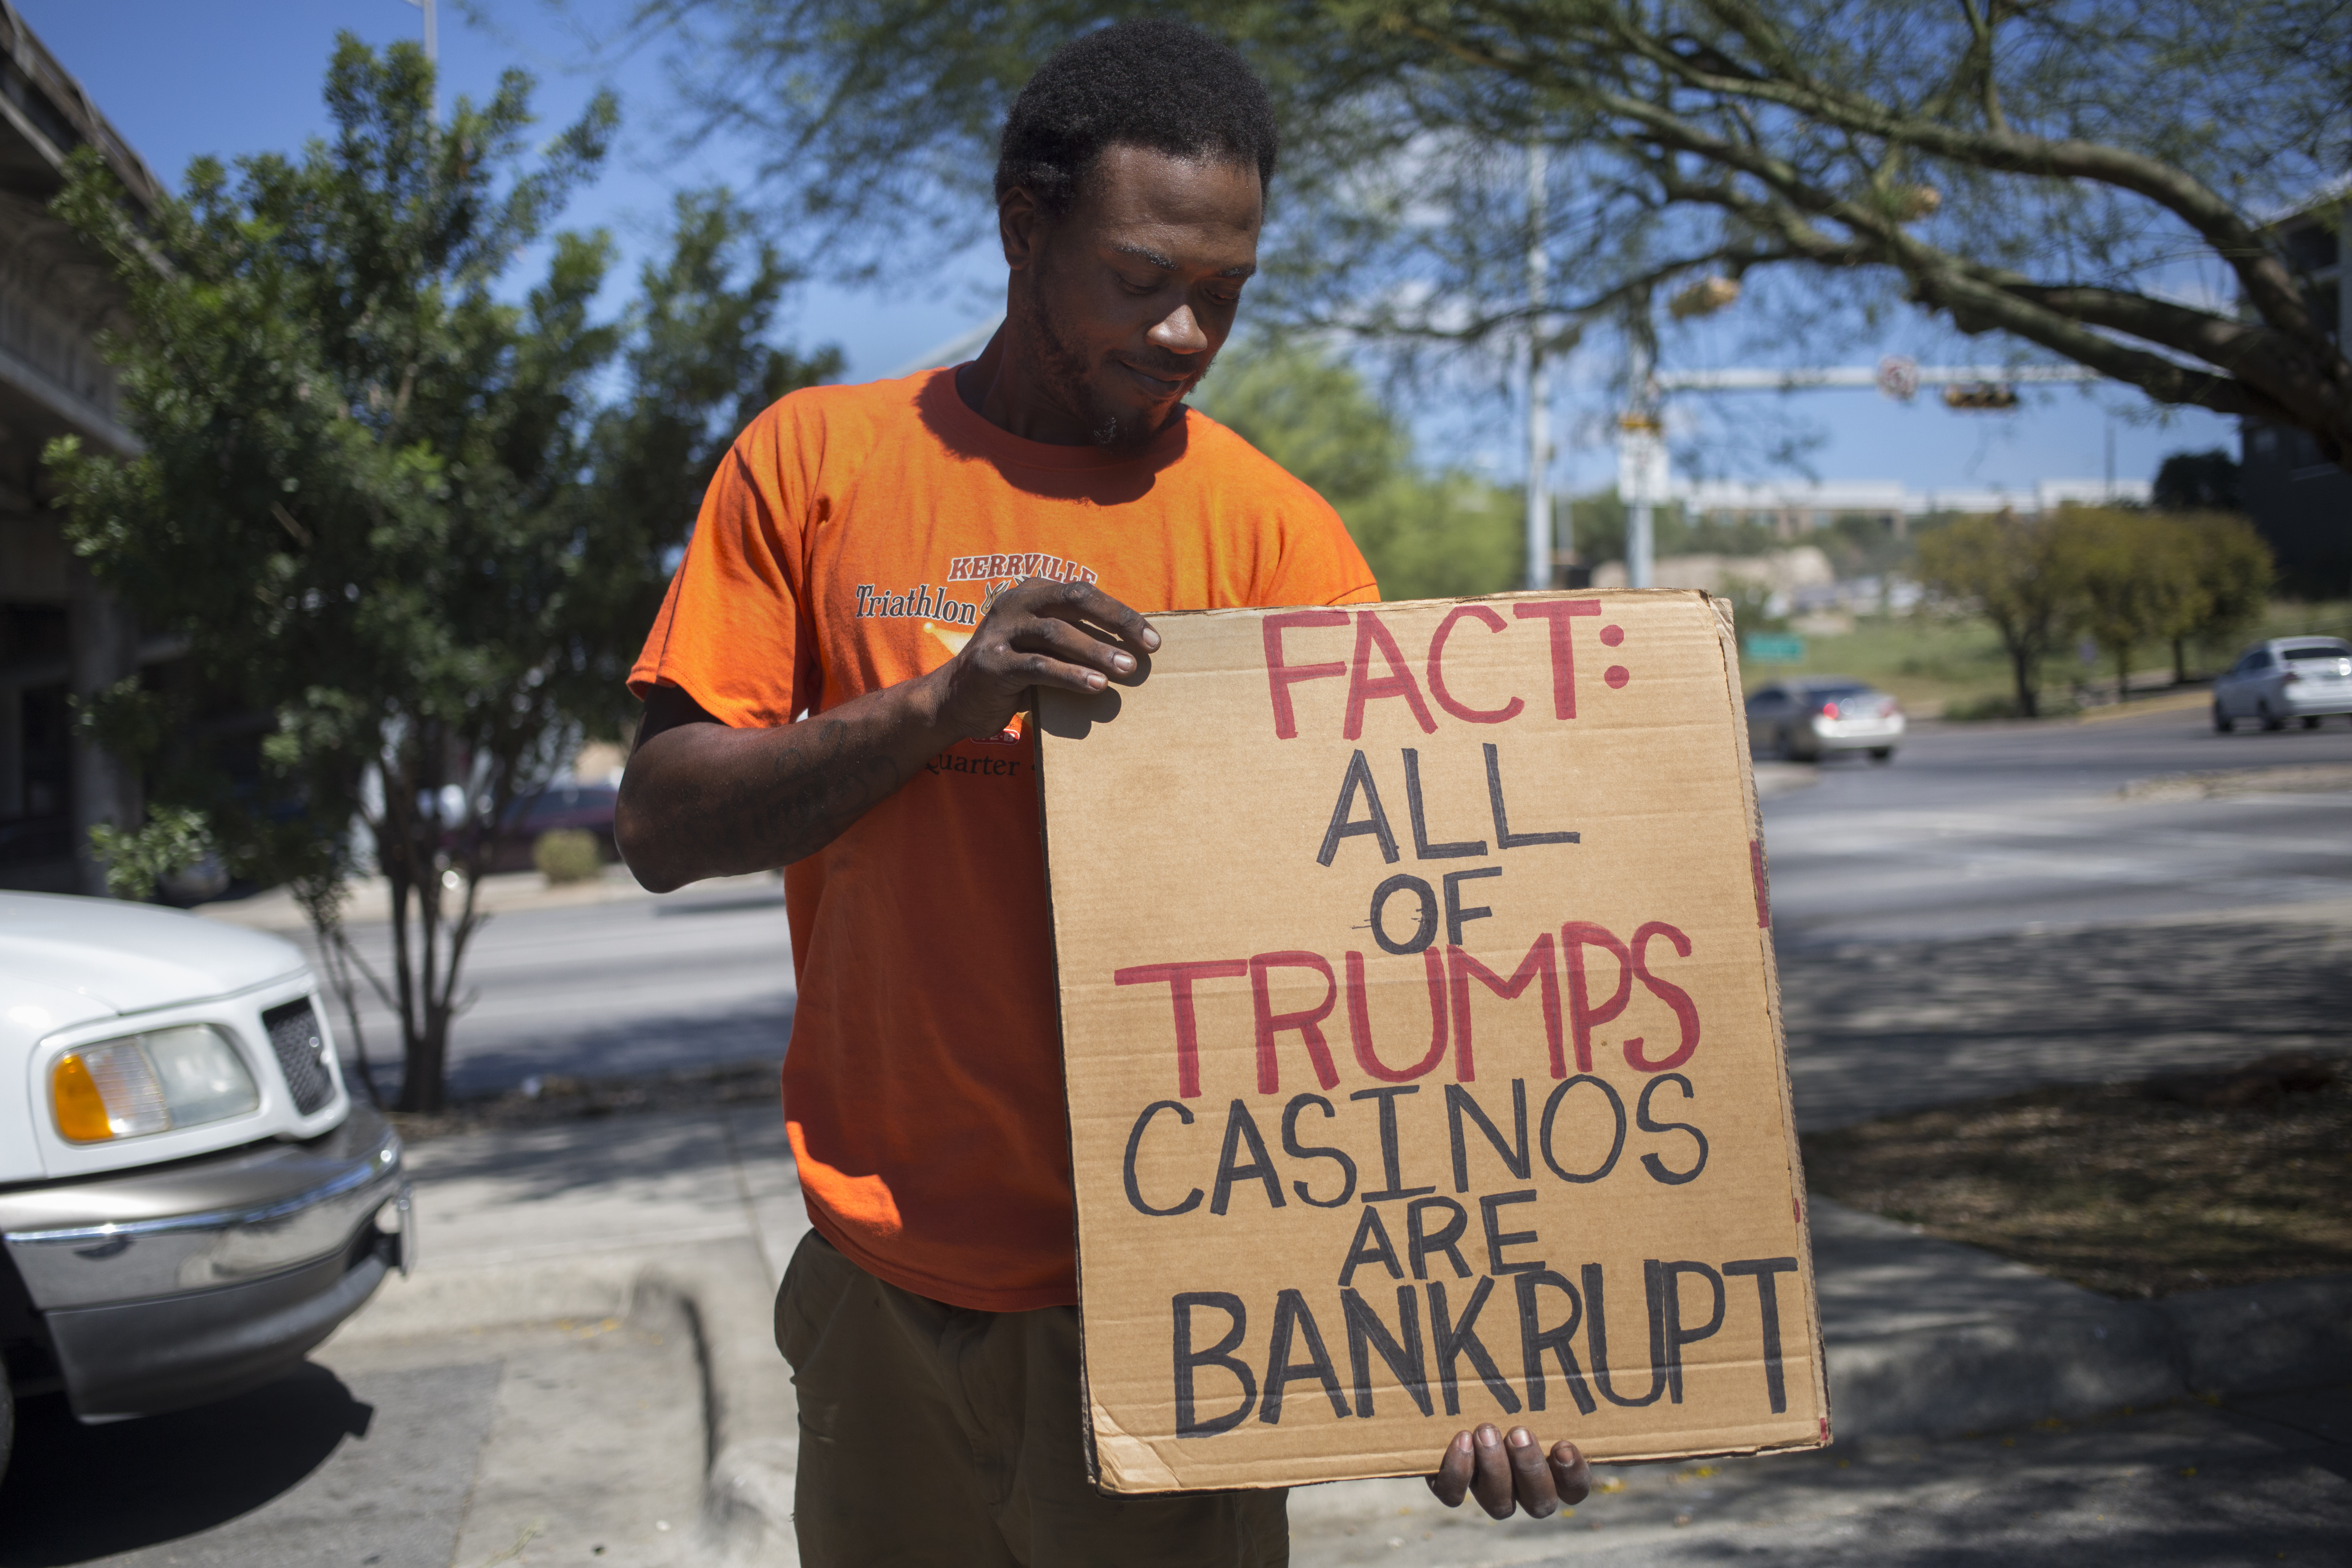 Zion Jeffamoff holding one of his anti-Trump signs near the intersection of Sixth Street and I-35 on October 5, 2016.